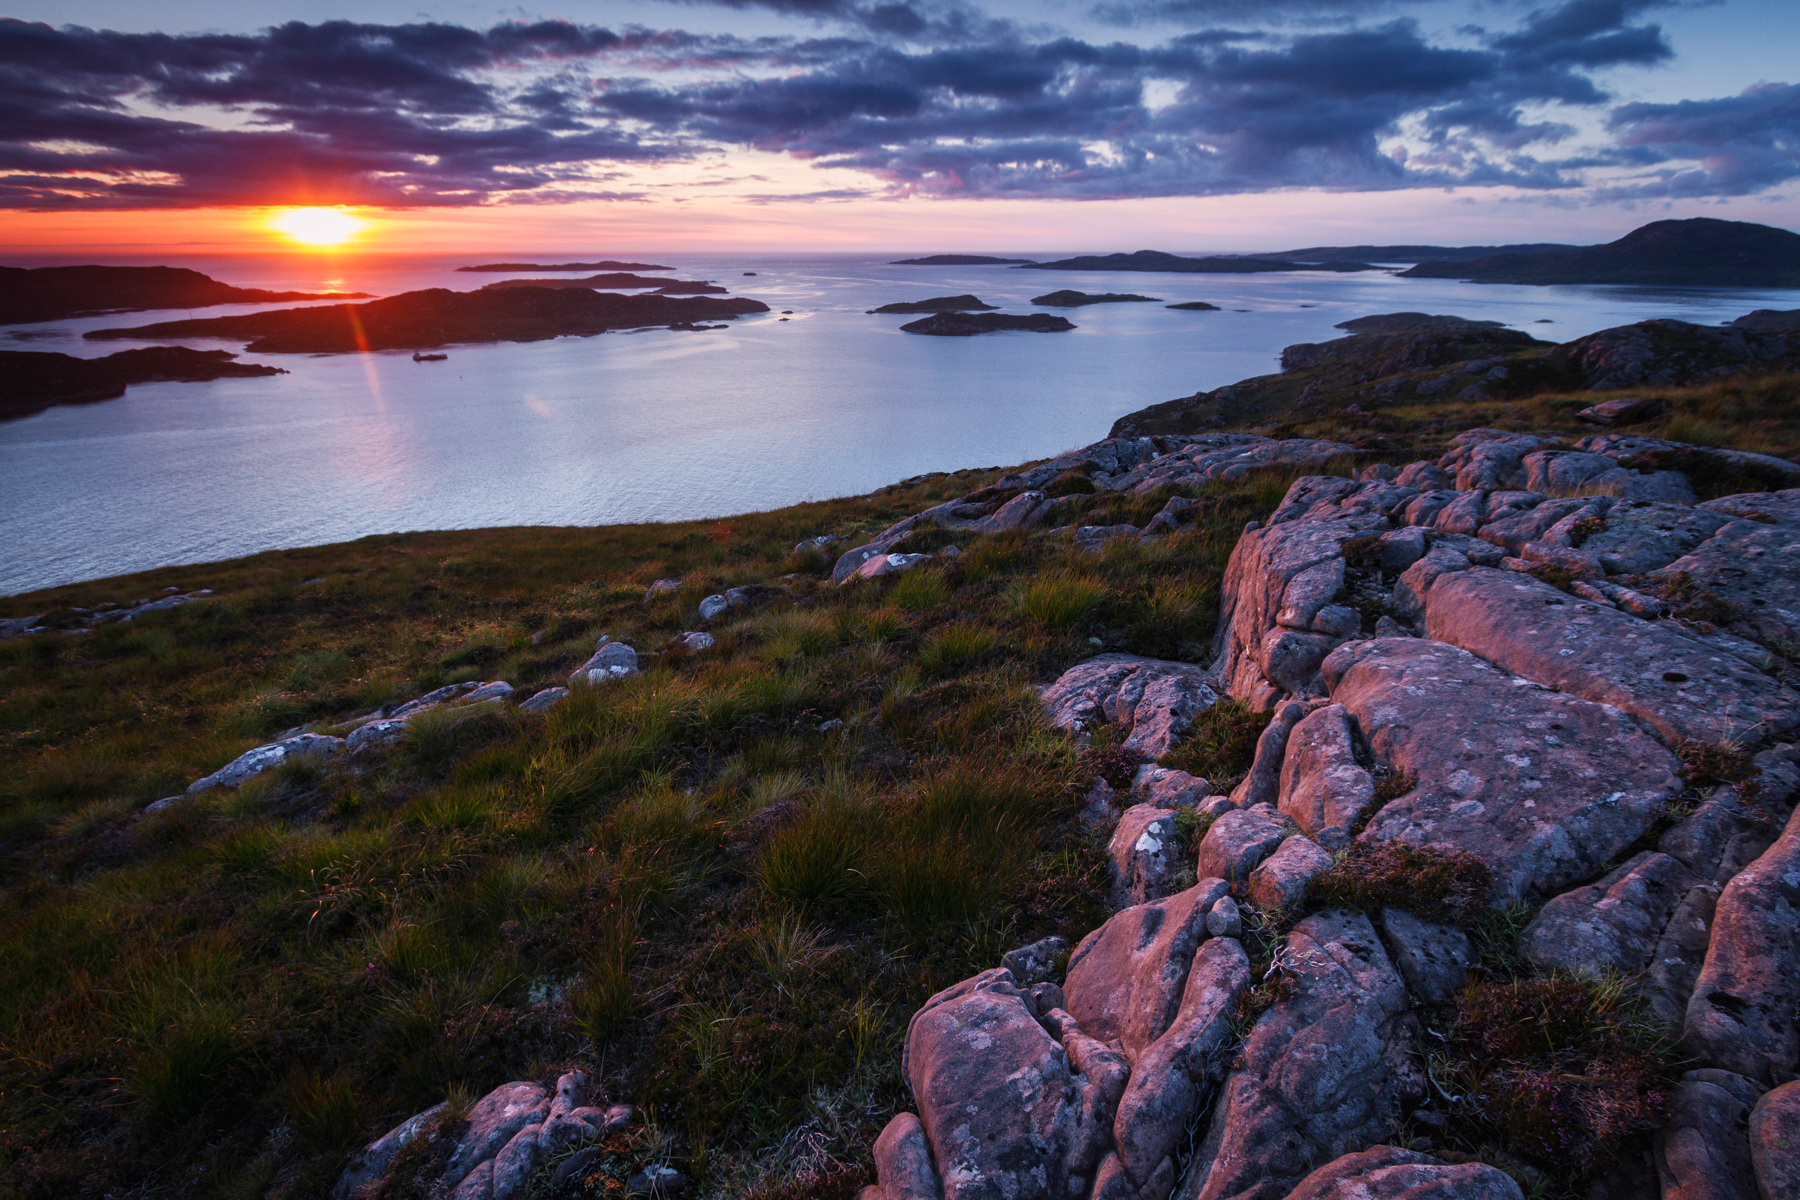 Summer isles mjgholland Photography